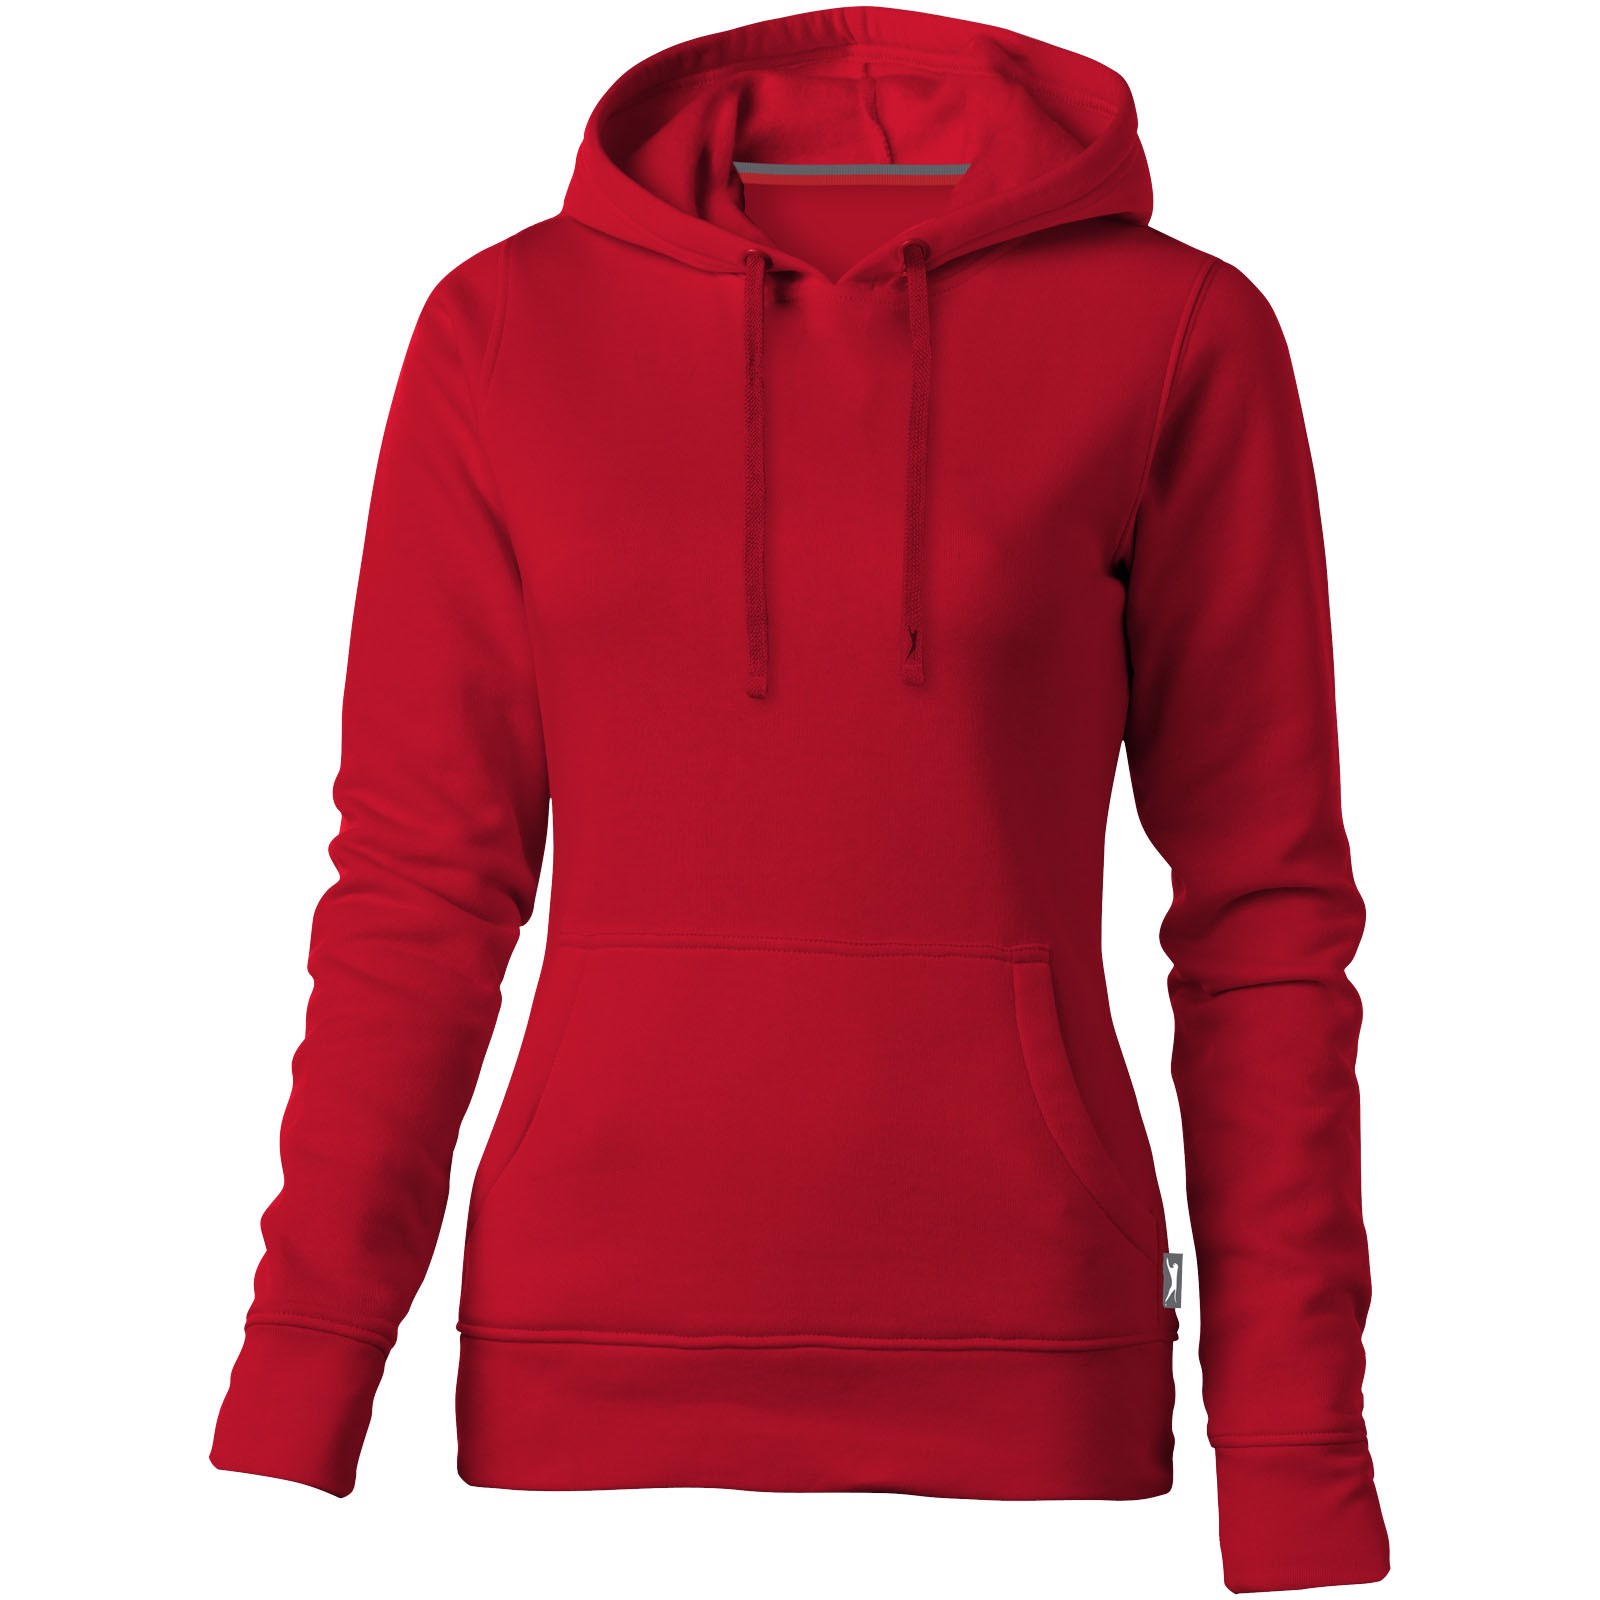 Alley hooded ladies sweater - Red / S